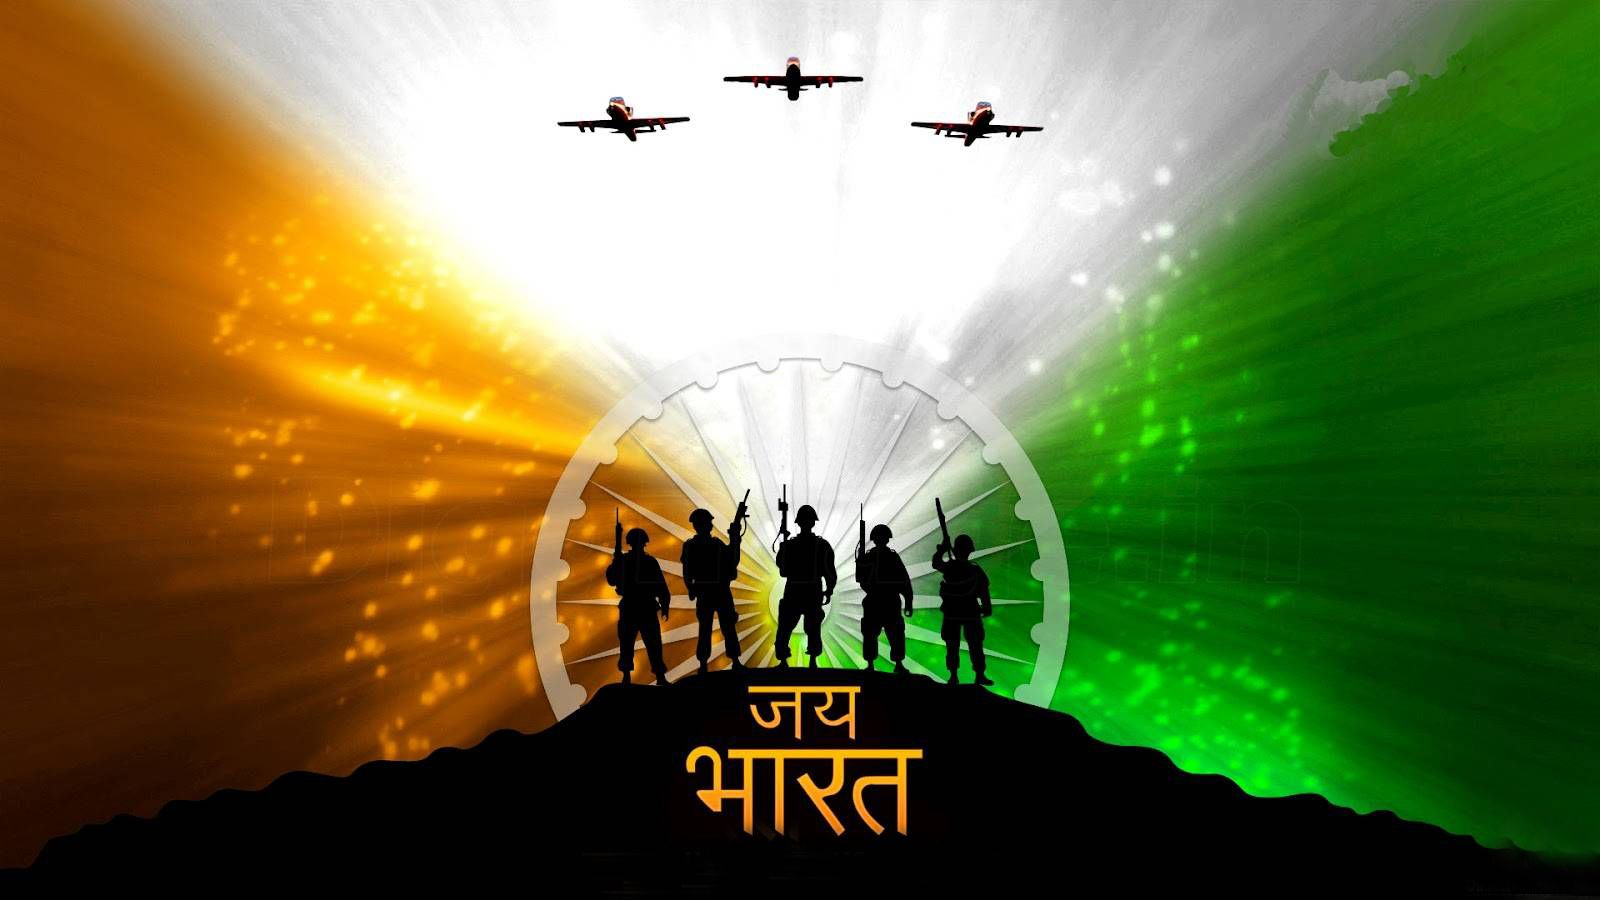 essay on independence day in simple english